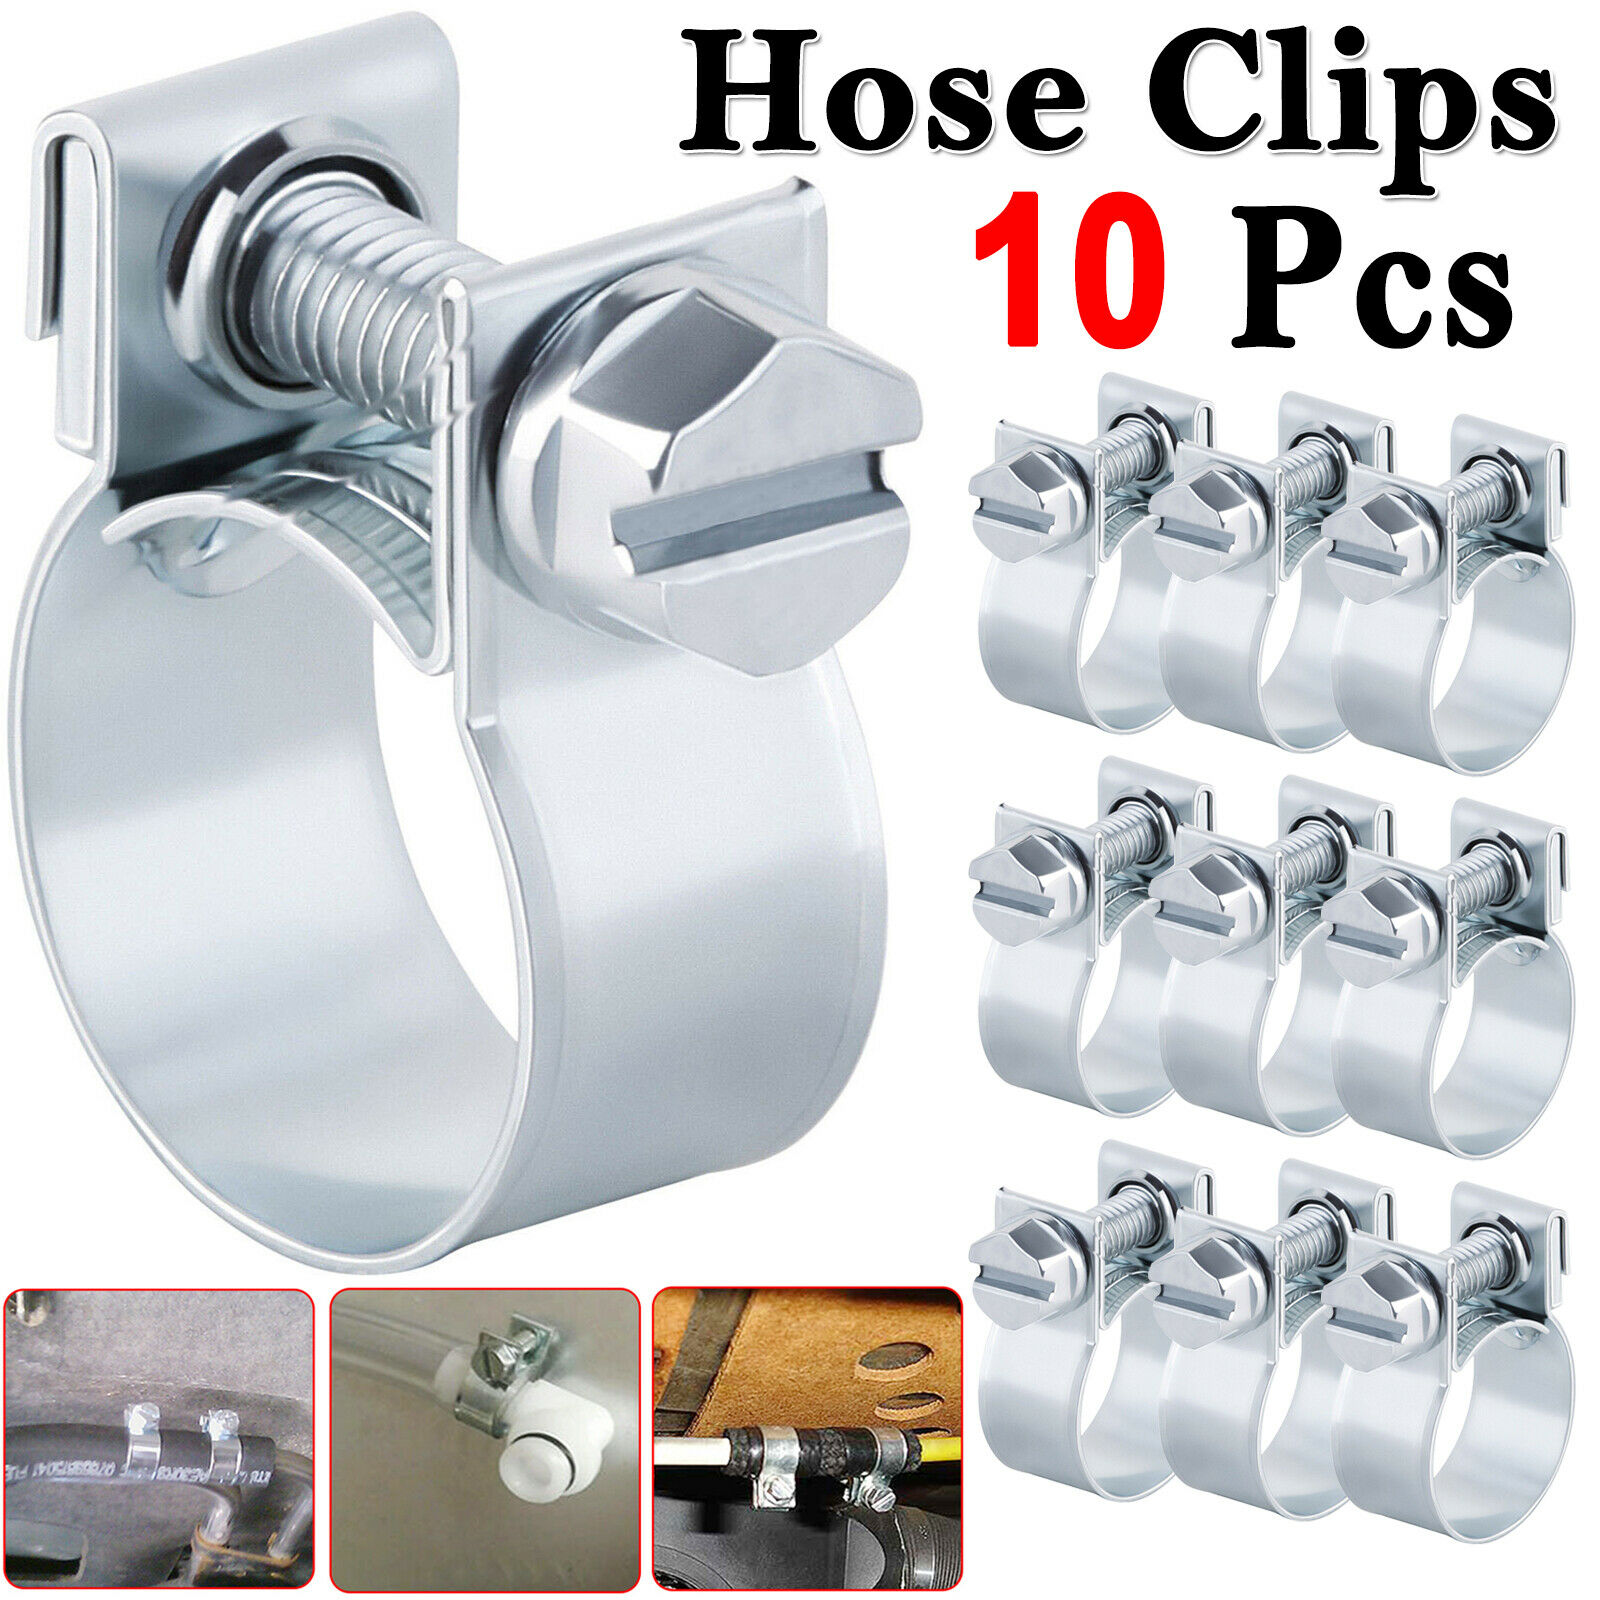 70 x Assorted Mini Fuel Line Jubilee Hose Clips for Diesel /& Petrol Pipes